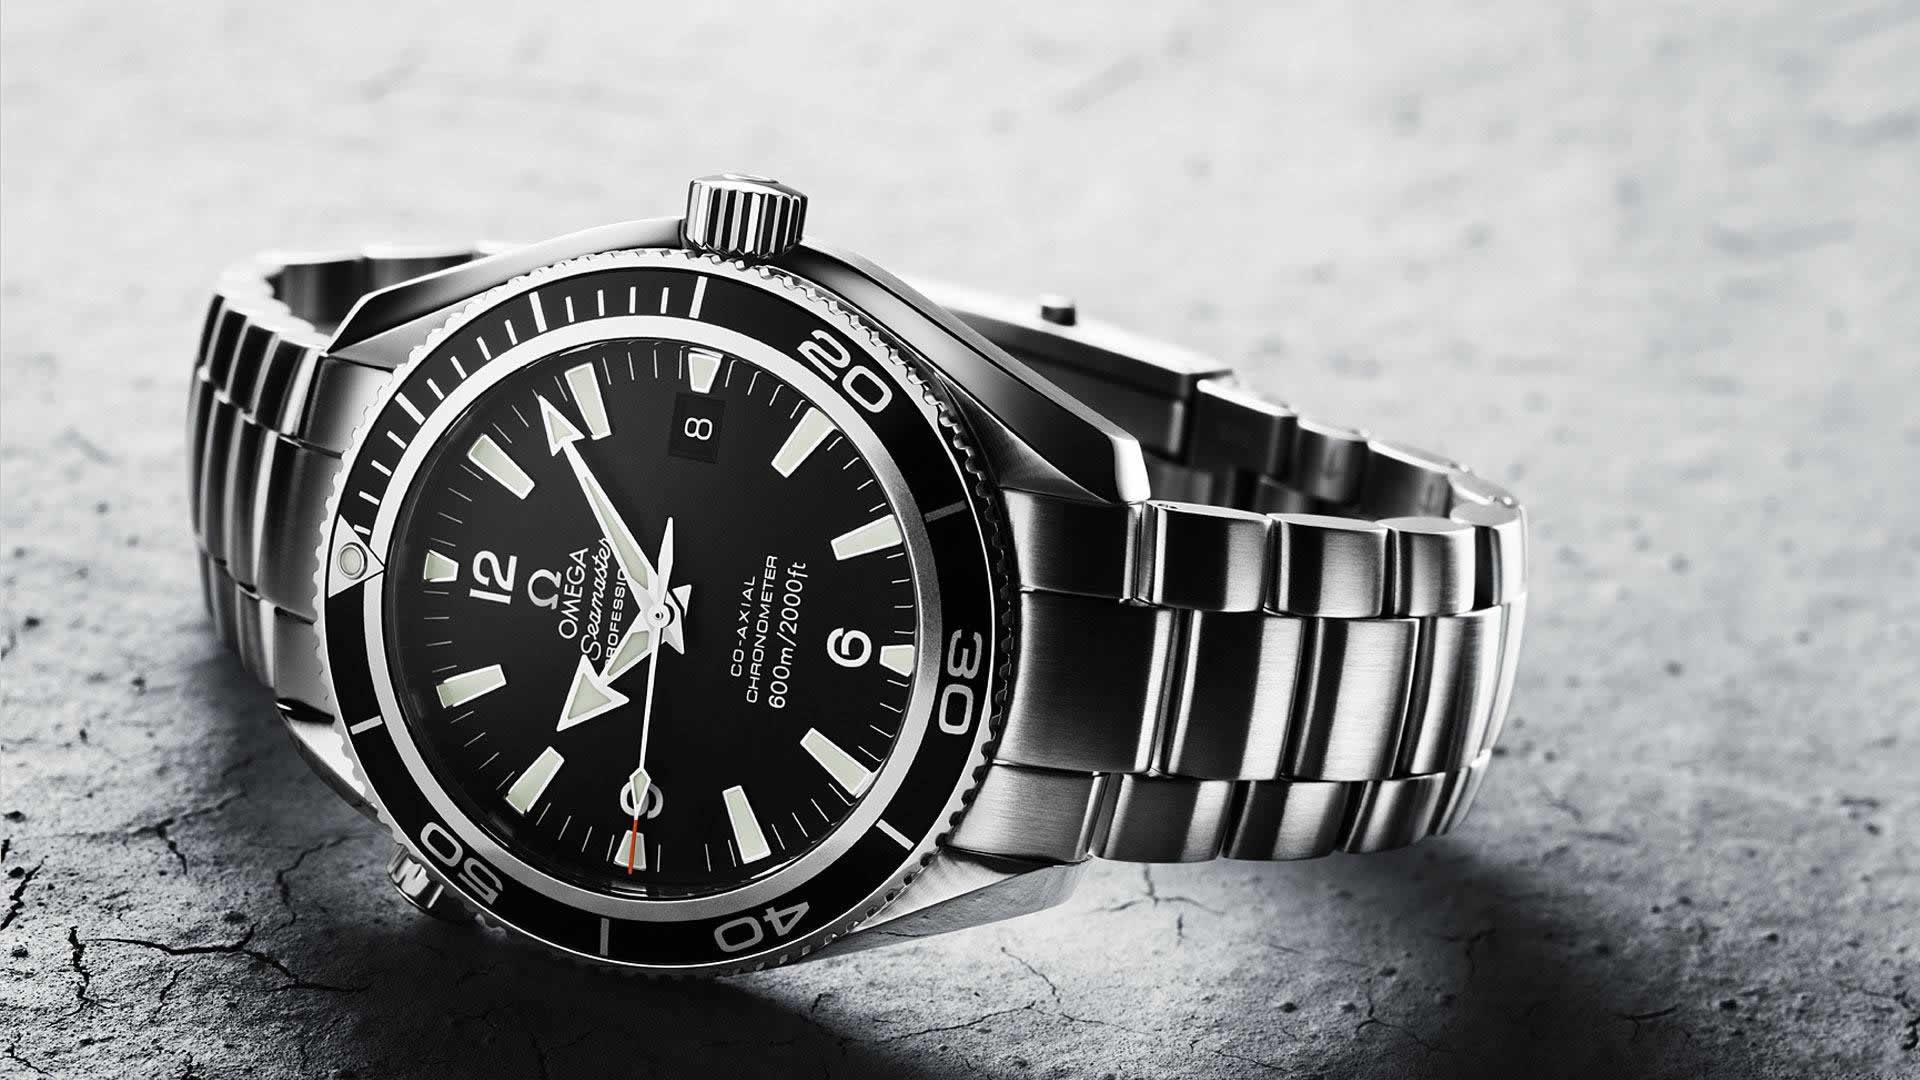 SITEOmega-Seamaster-Professional-Co-Axial_www.LuxuryWallpapers.net_